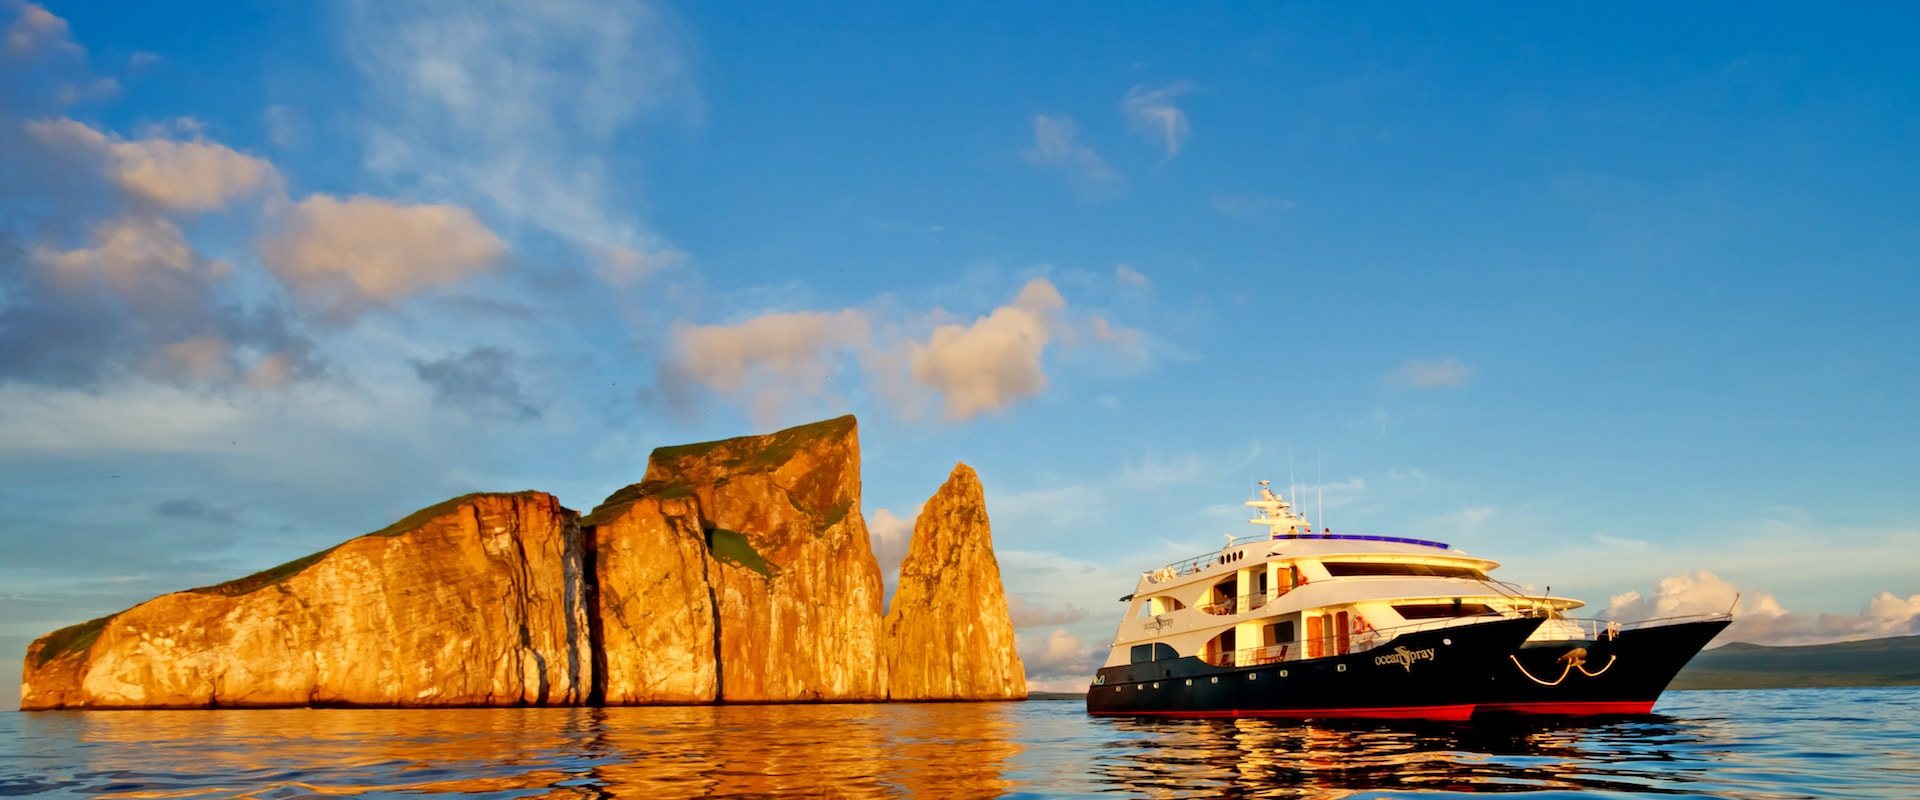 52 Small Ship Cruises in Galapagos - LiveAboard.com